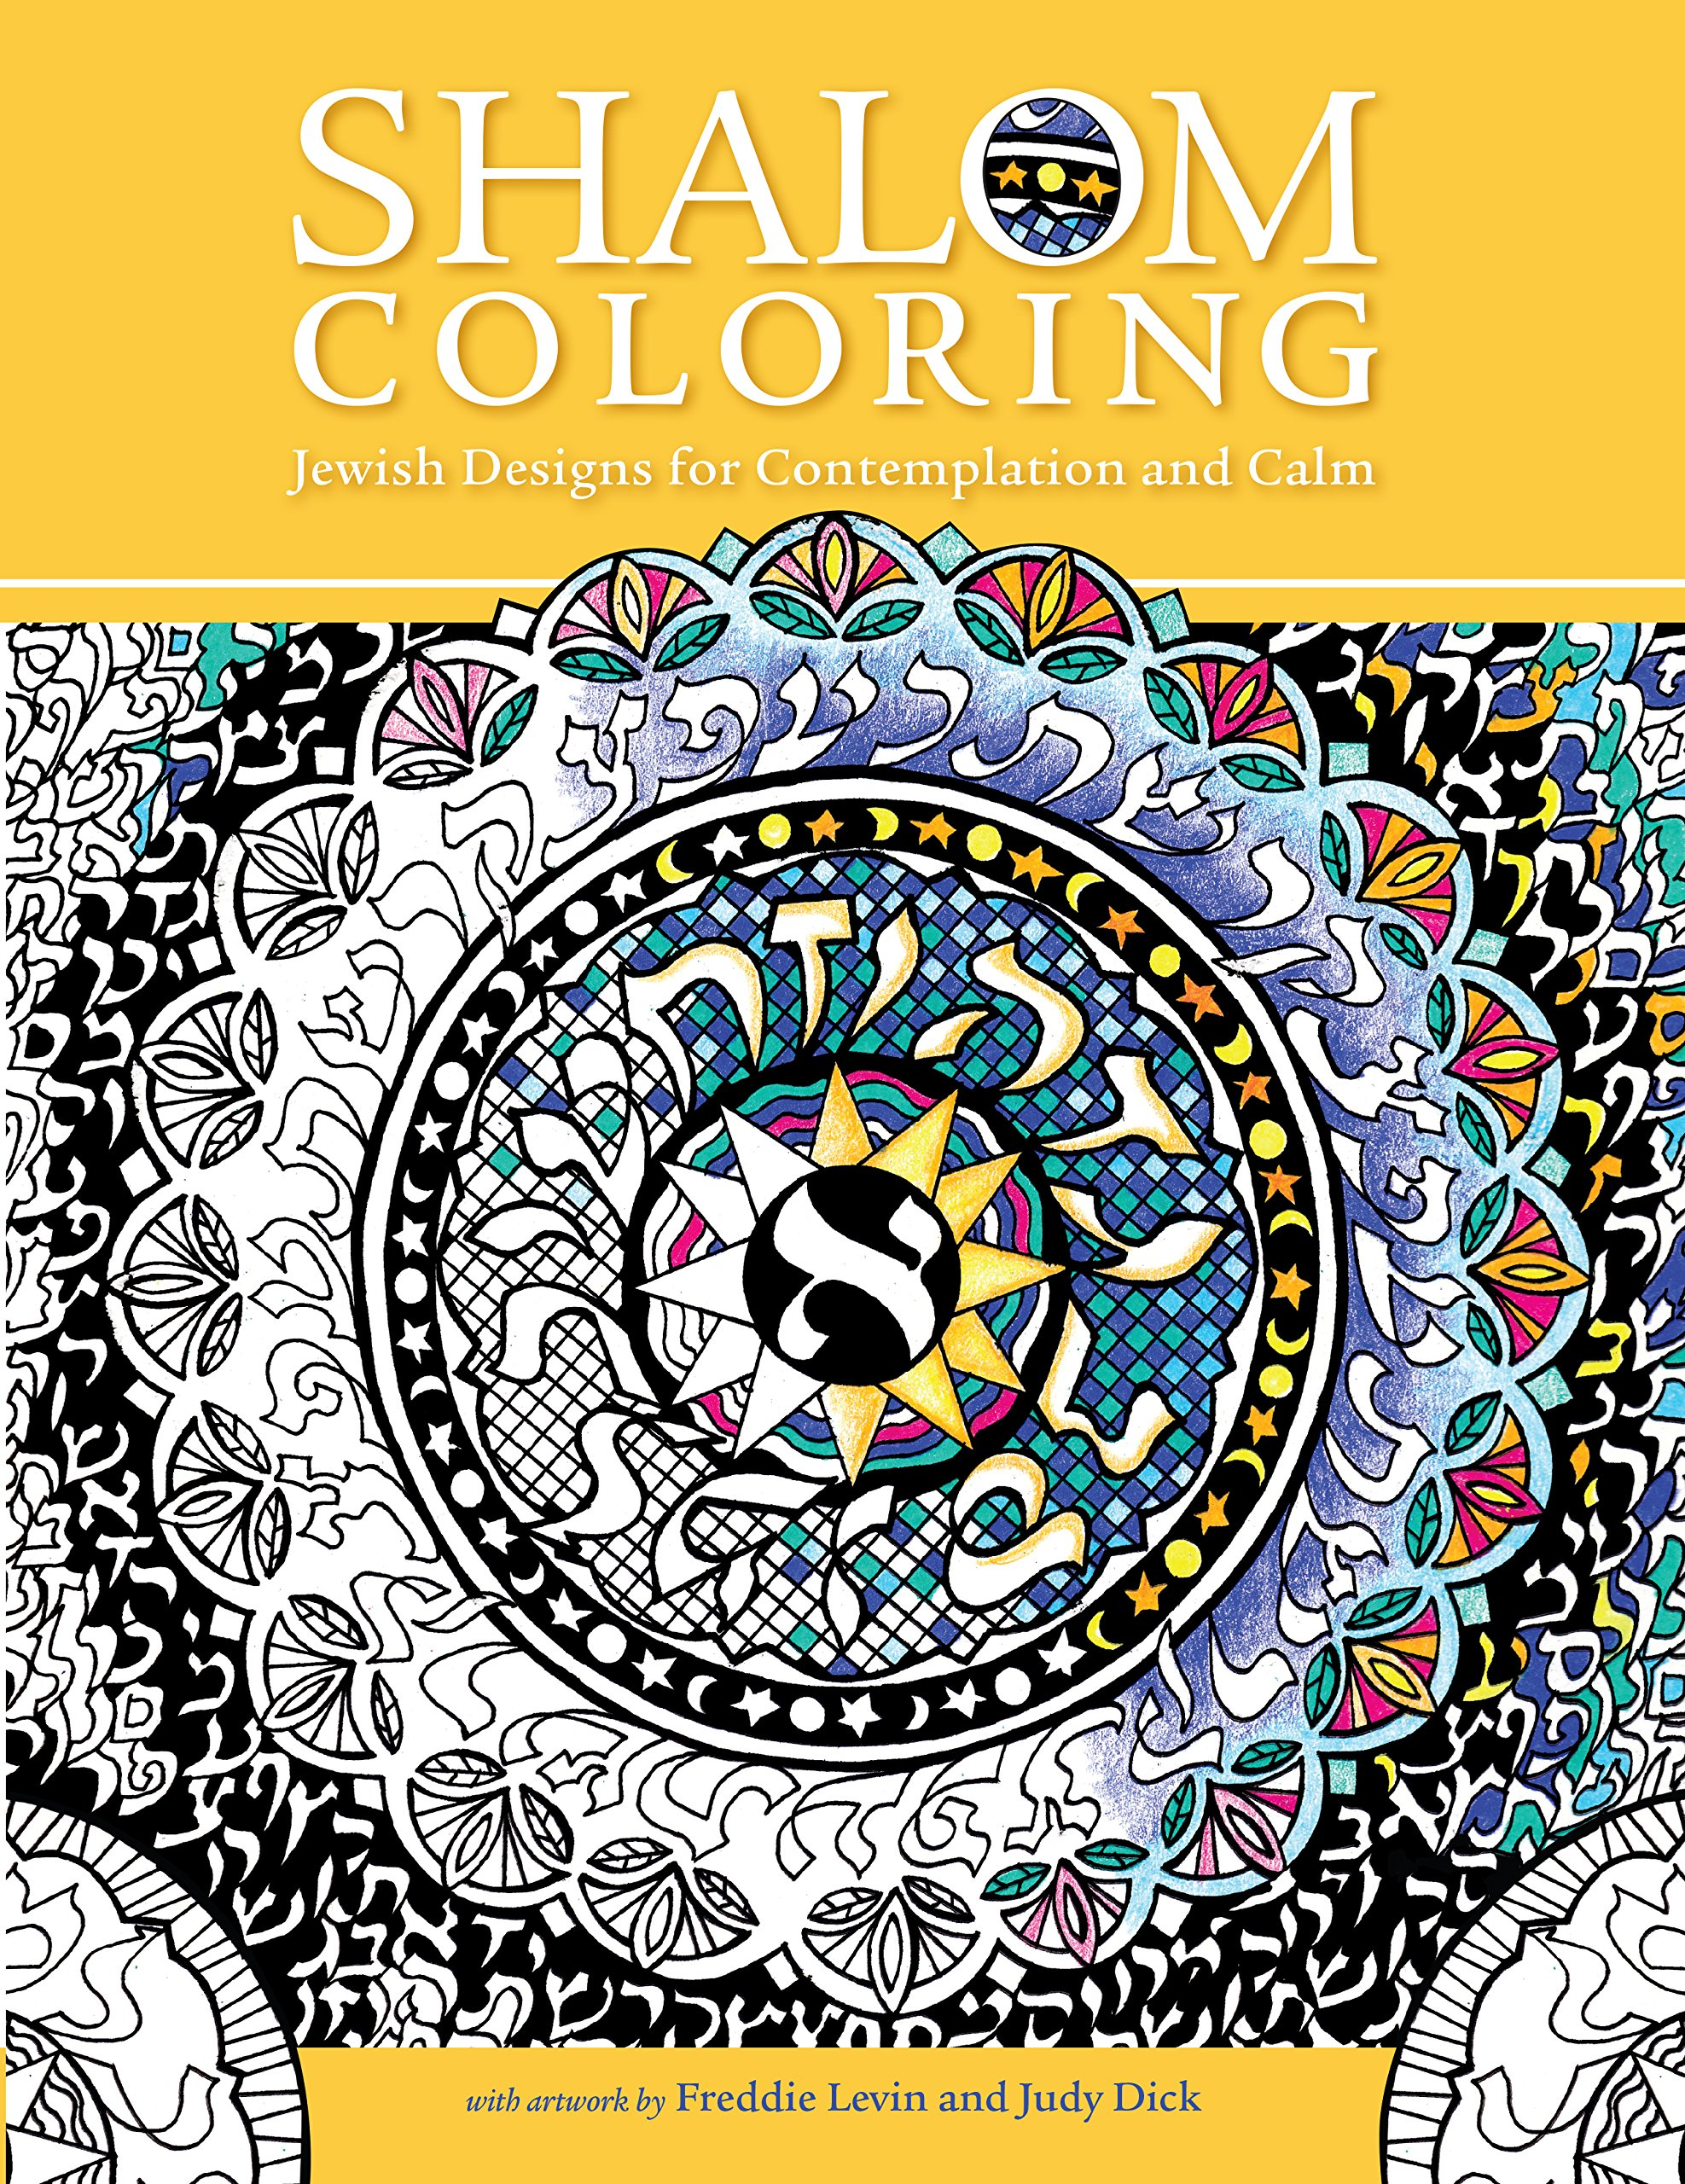 Adult Coloring Books Are All the Craze Now There s a